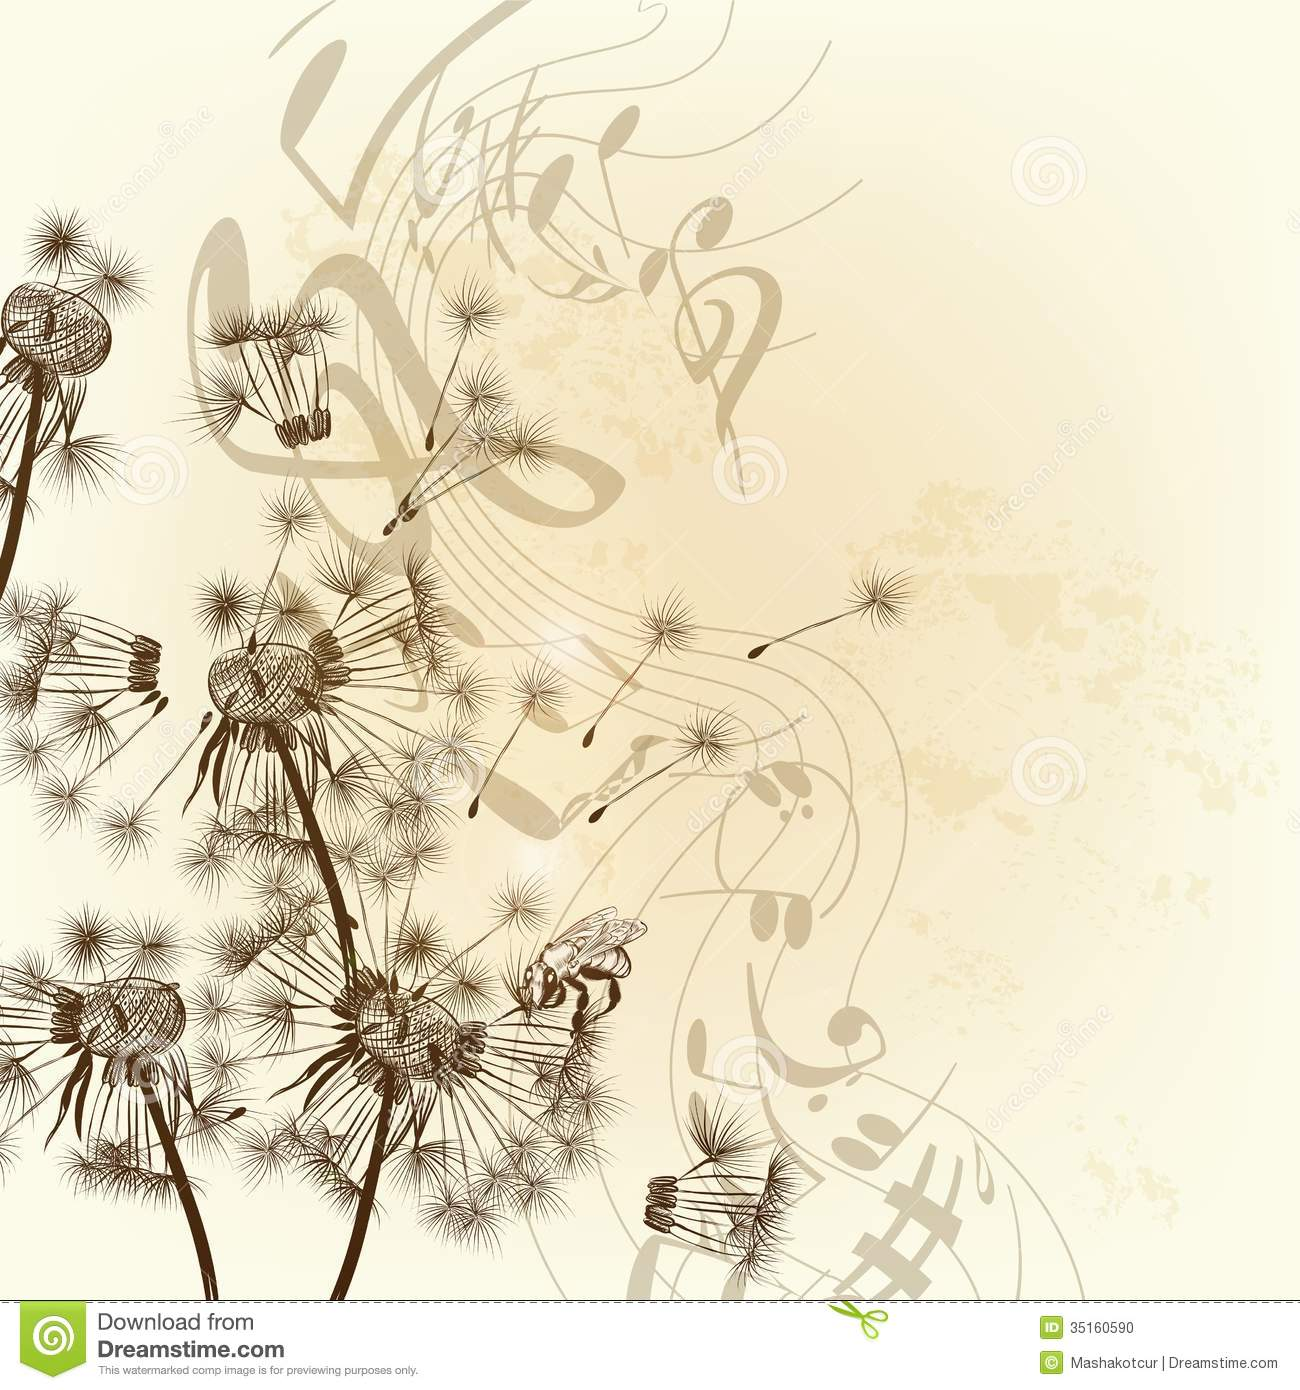 music notes backgrounds floral - photo #12